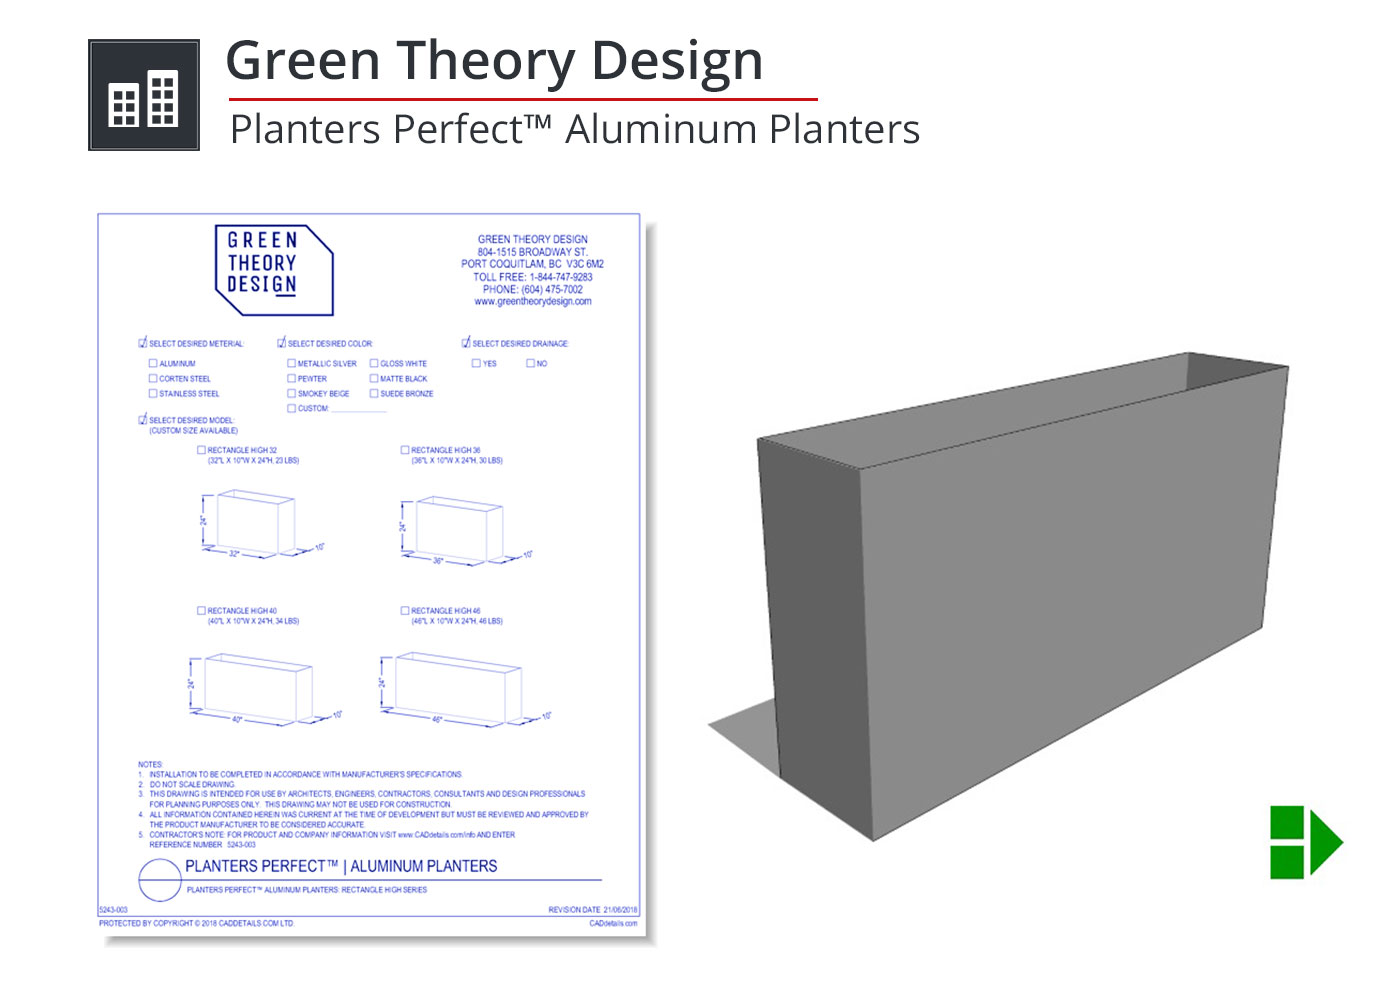 Green-Theory-Design-Planters-Perfect-Aluminum-Planters-CADdrawing (2).jpg